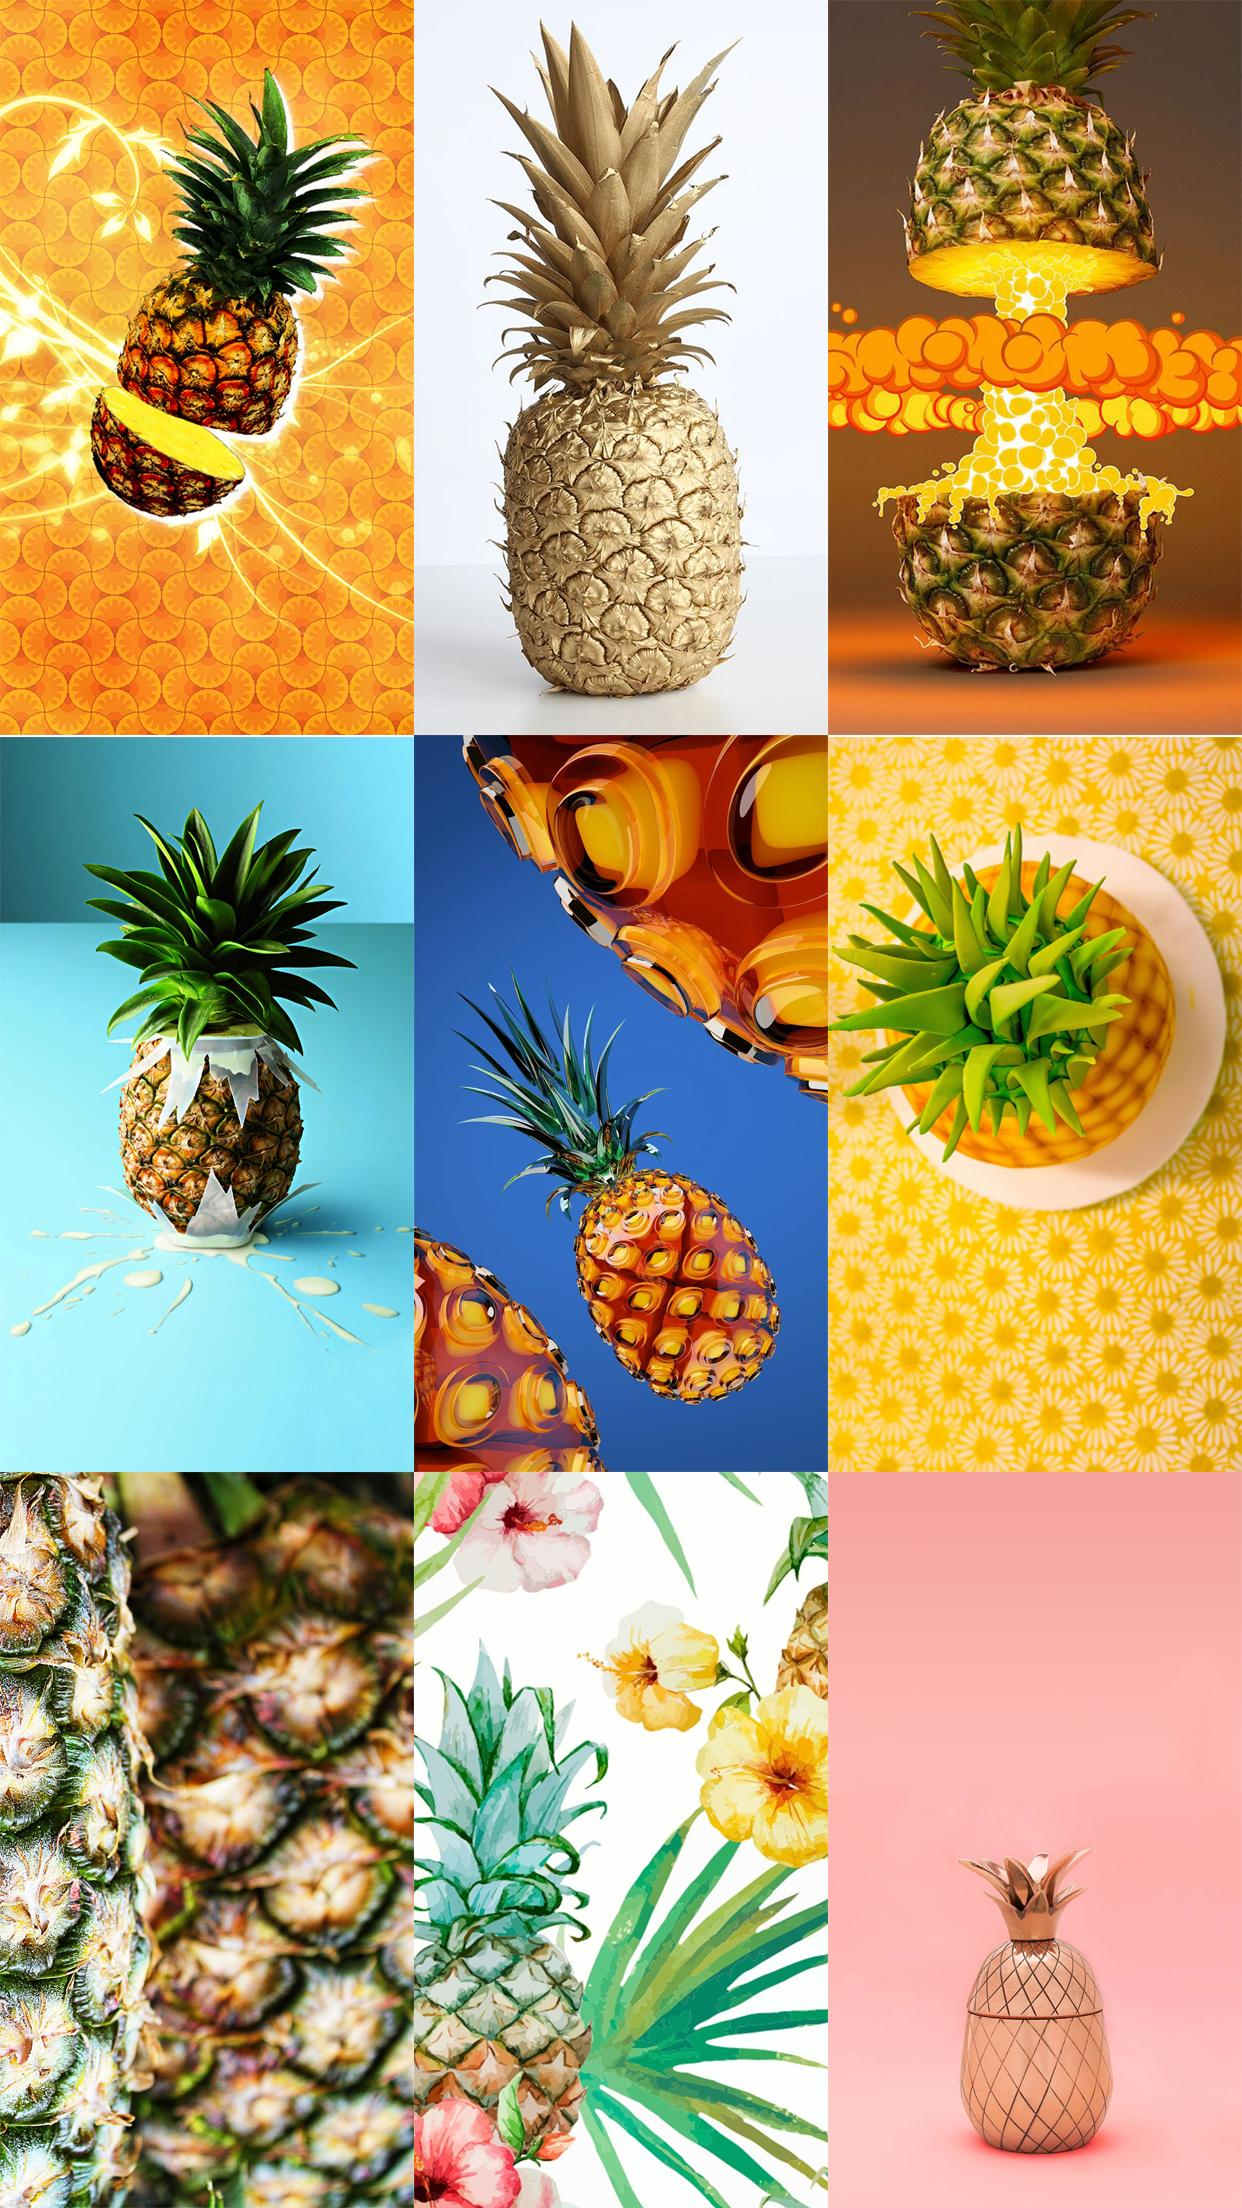 Pineapple Wallpapers HD para Android - APK Descargar